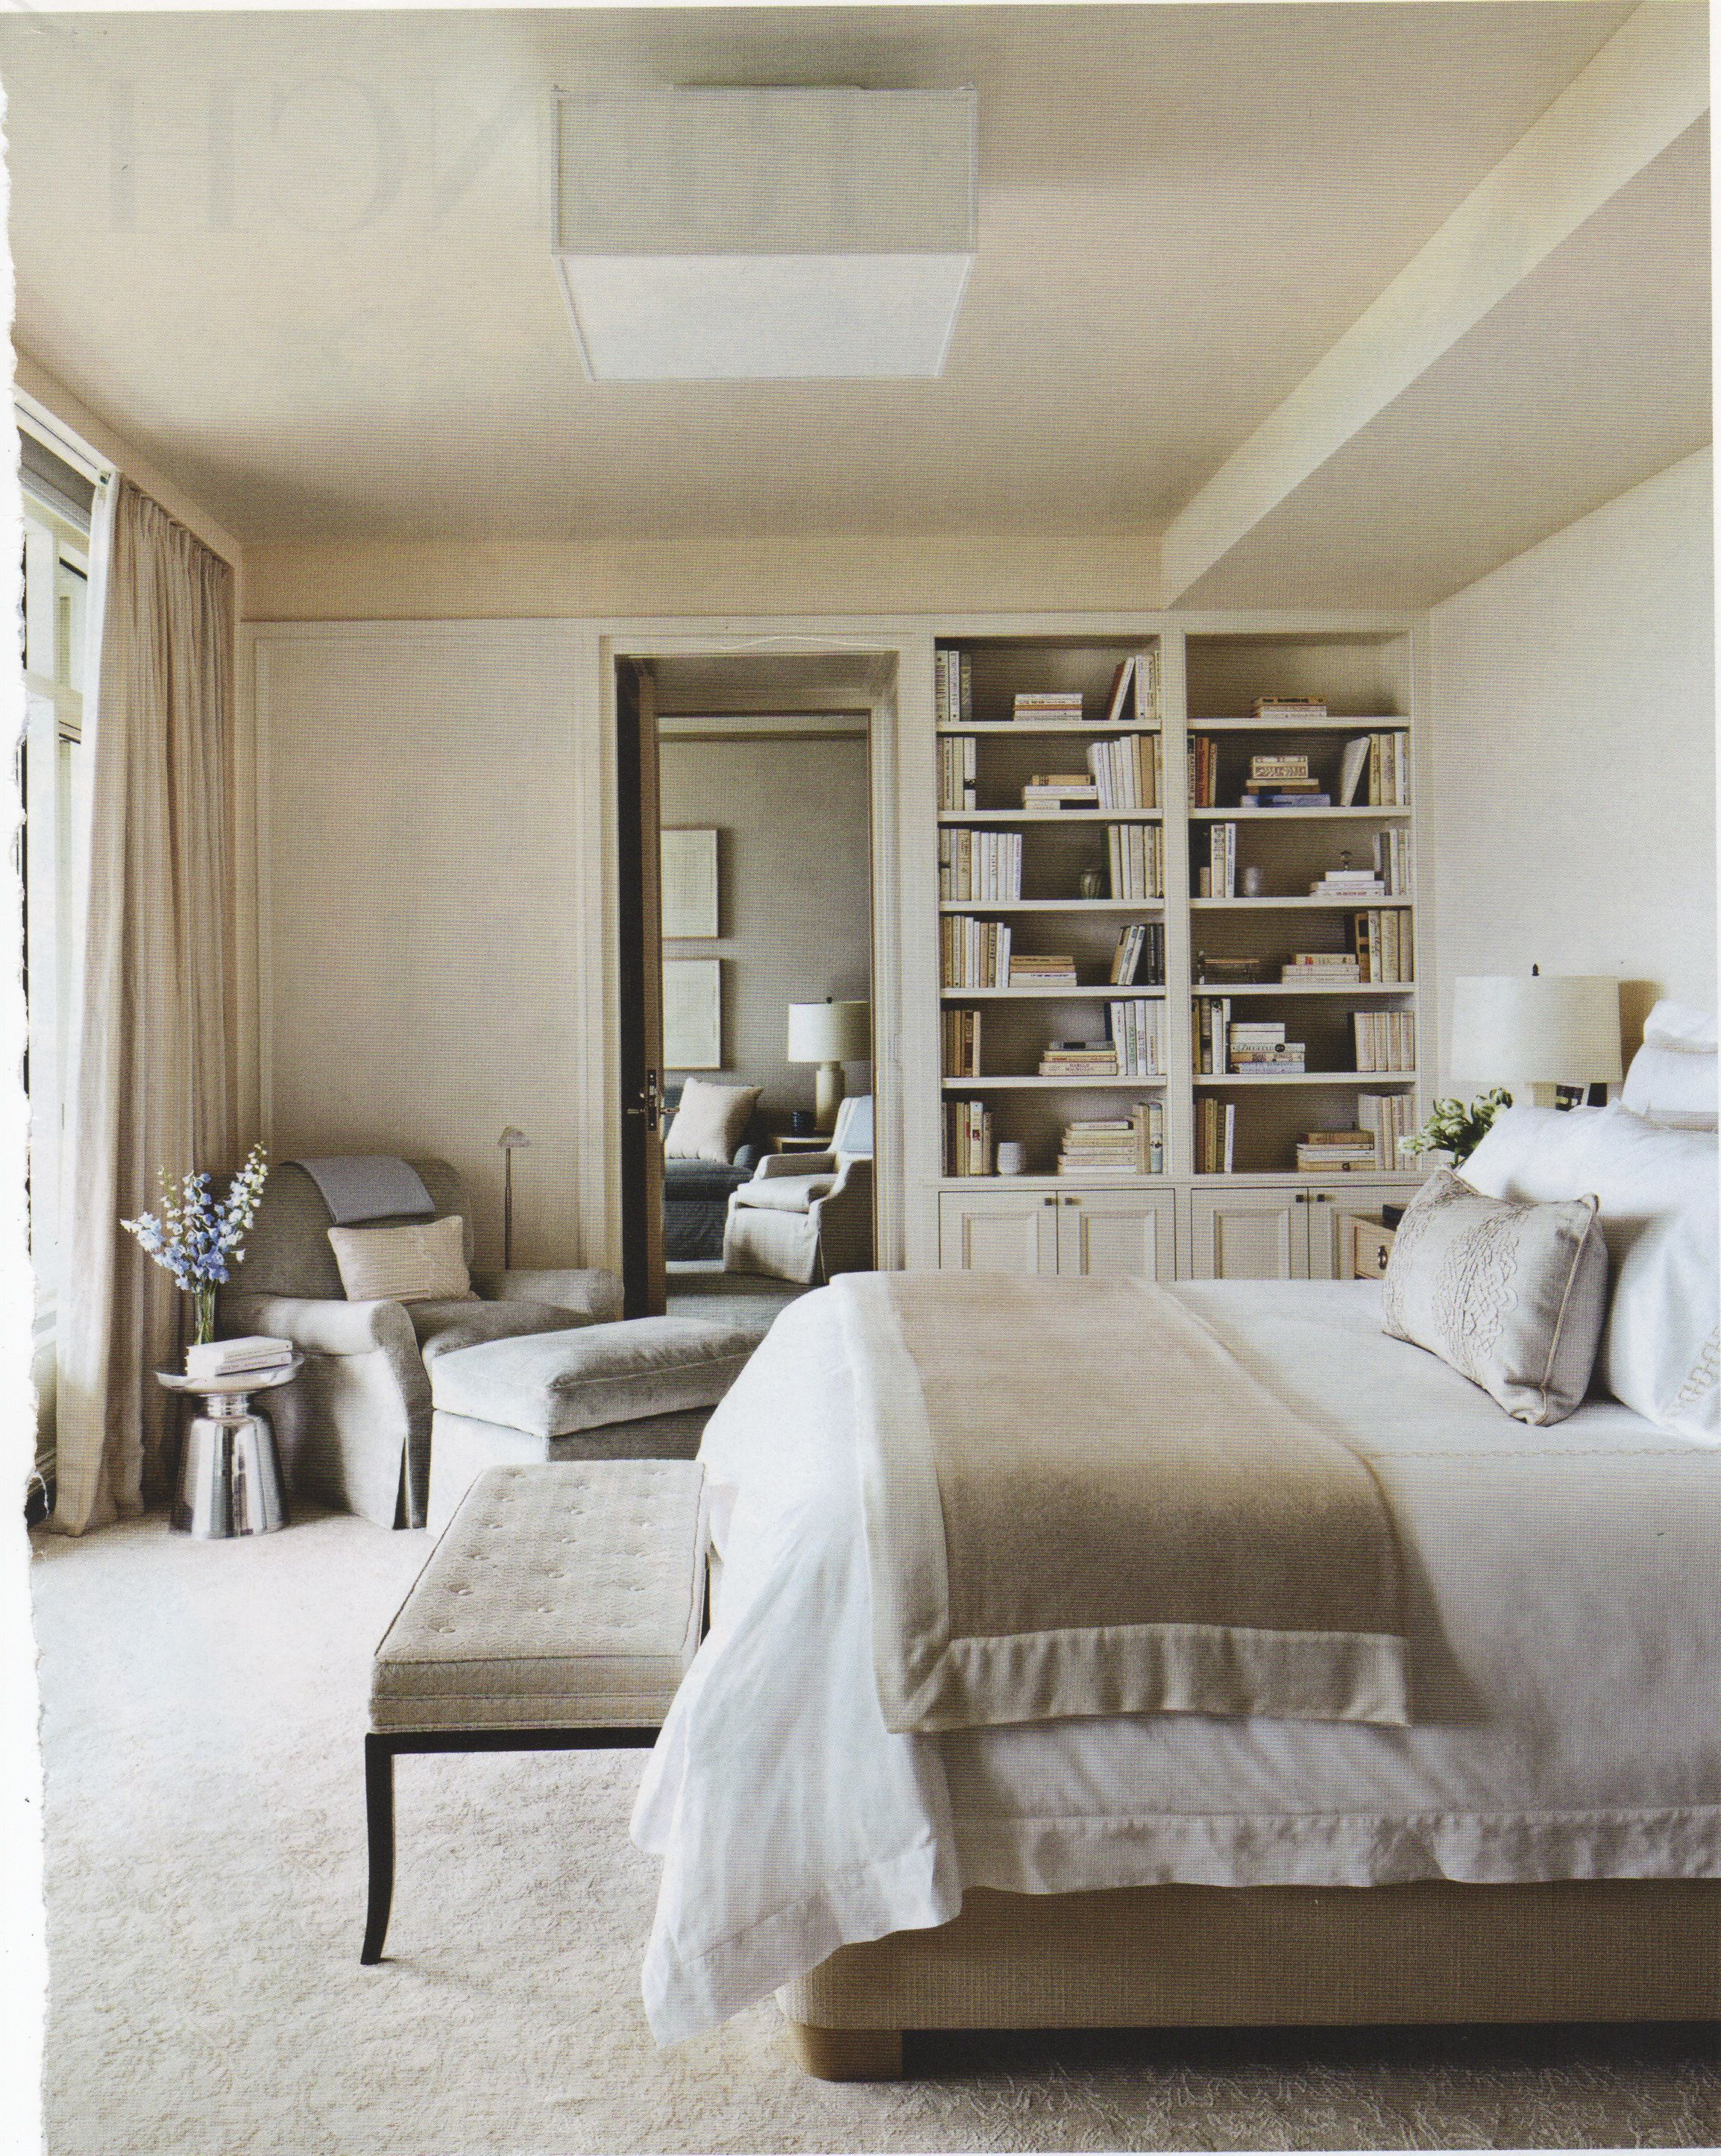 Get a Sophisticated Bedroom Design with Victoria